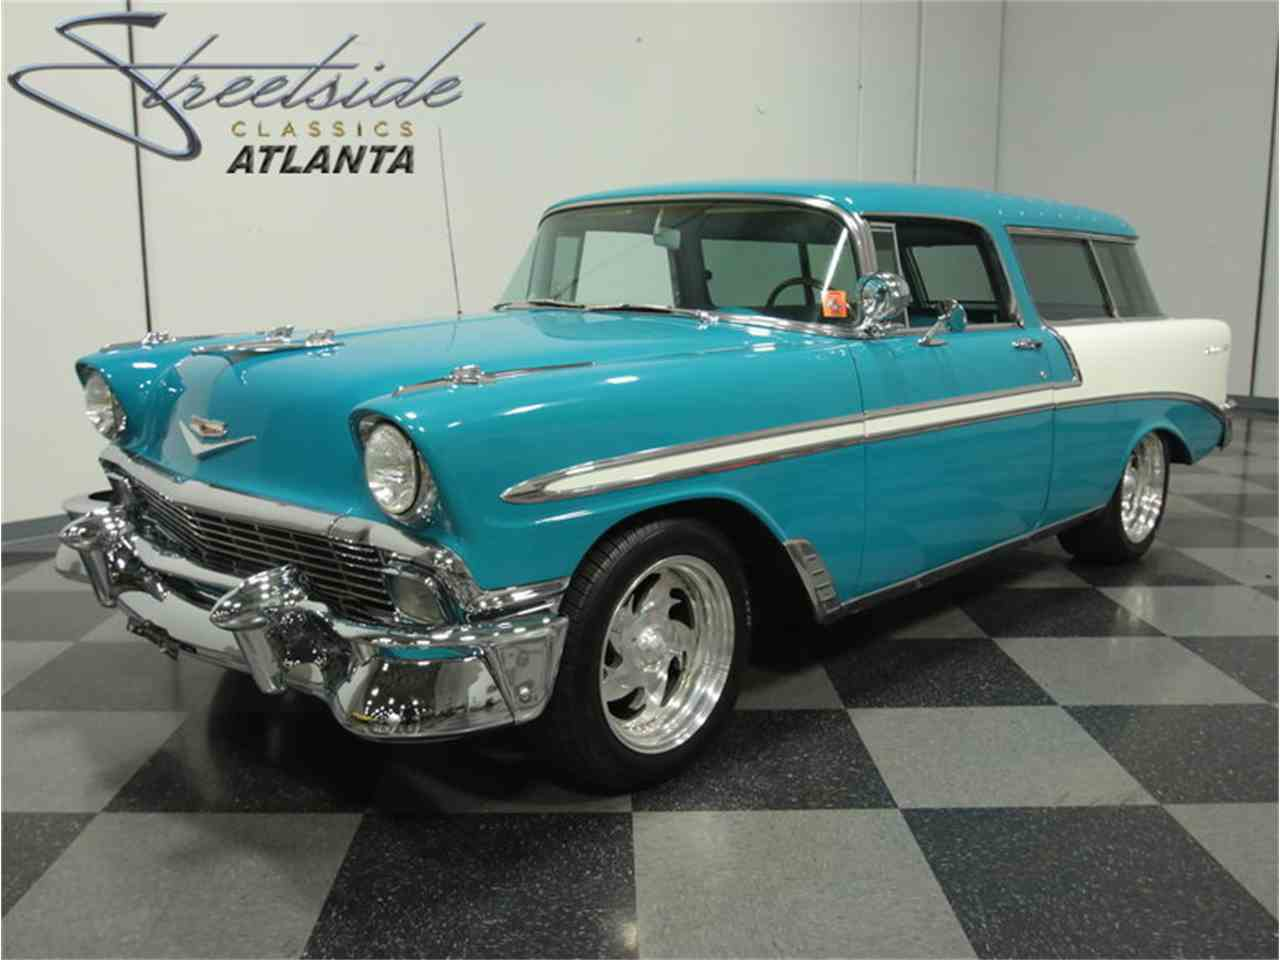 All Chevy 1956 chevy nomad for sale : 1956 Chevrolet Nomad for Sale on ClassicCars.com